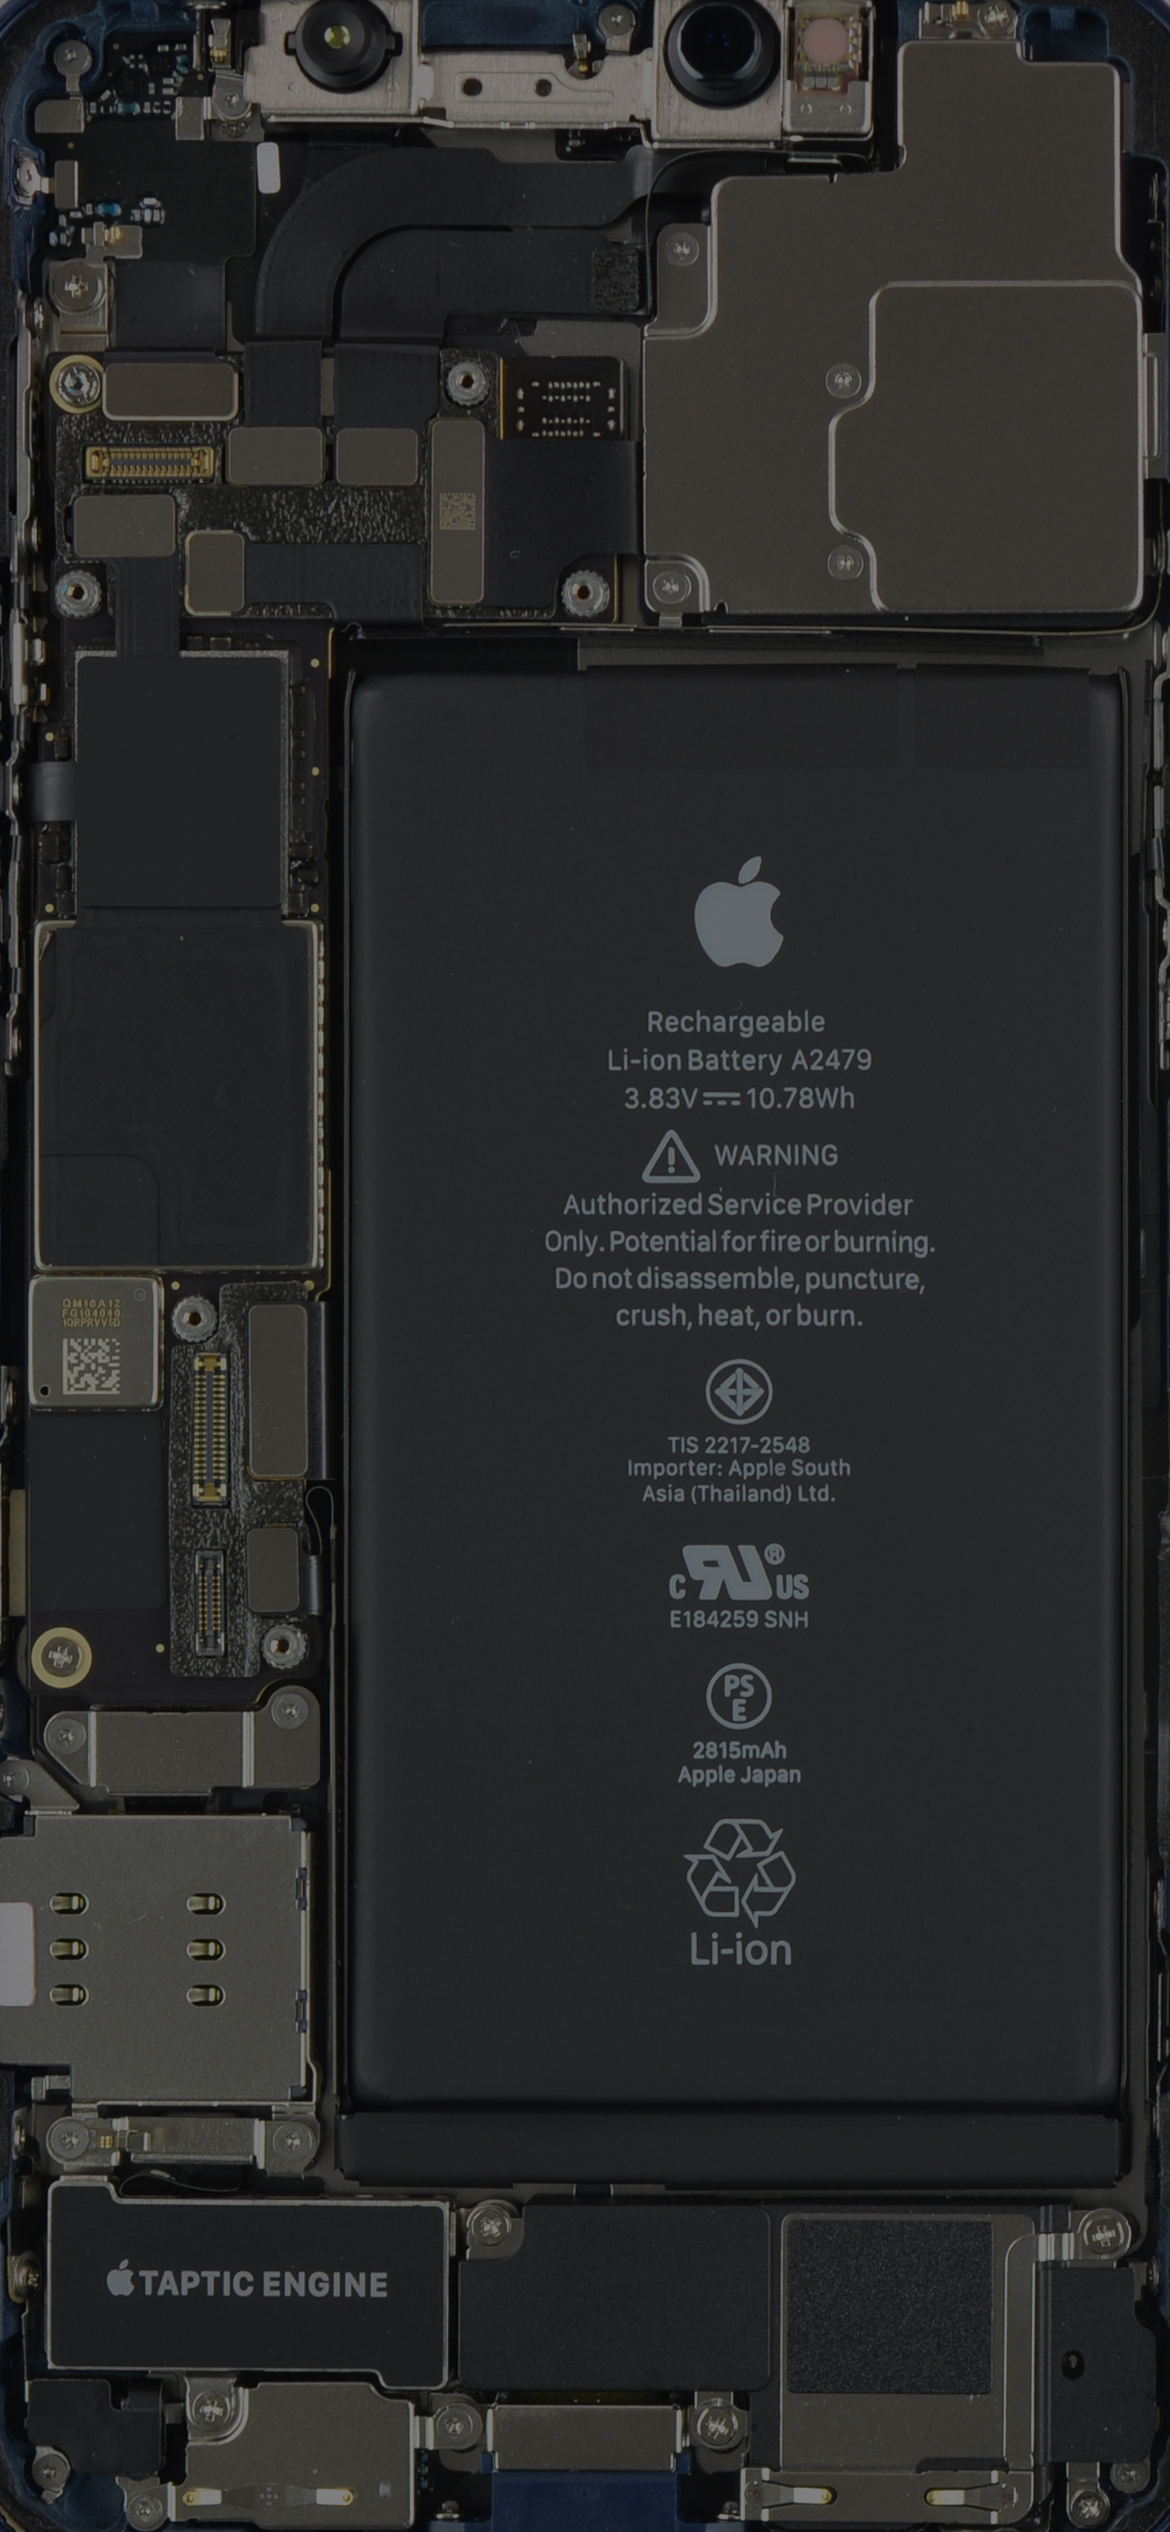 iPhone 12 internals wallpaper, slightly darker mode